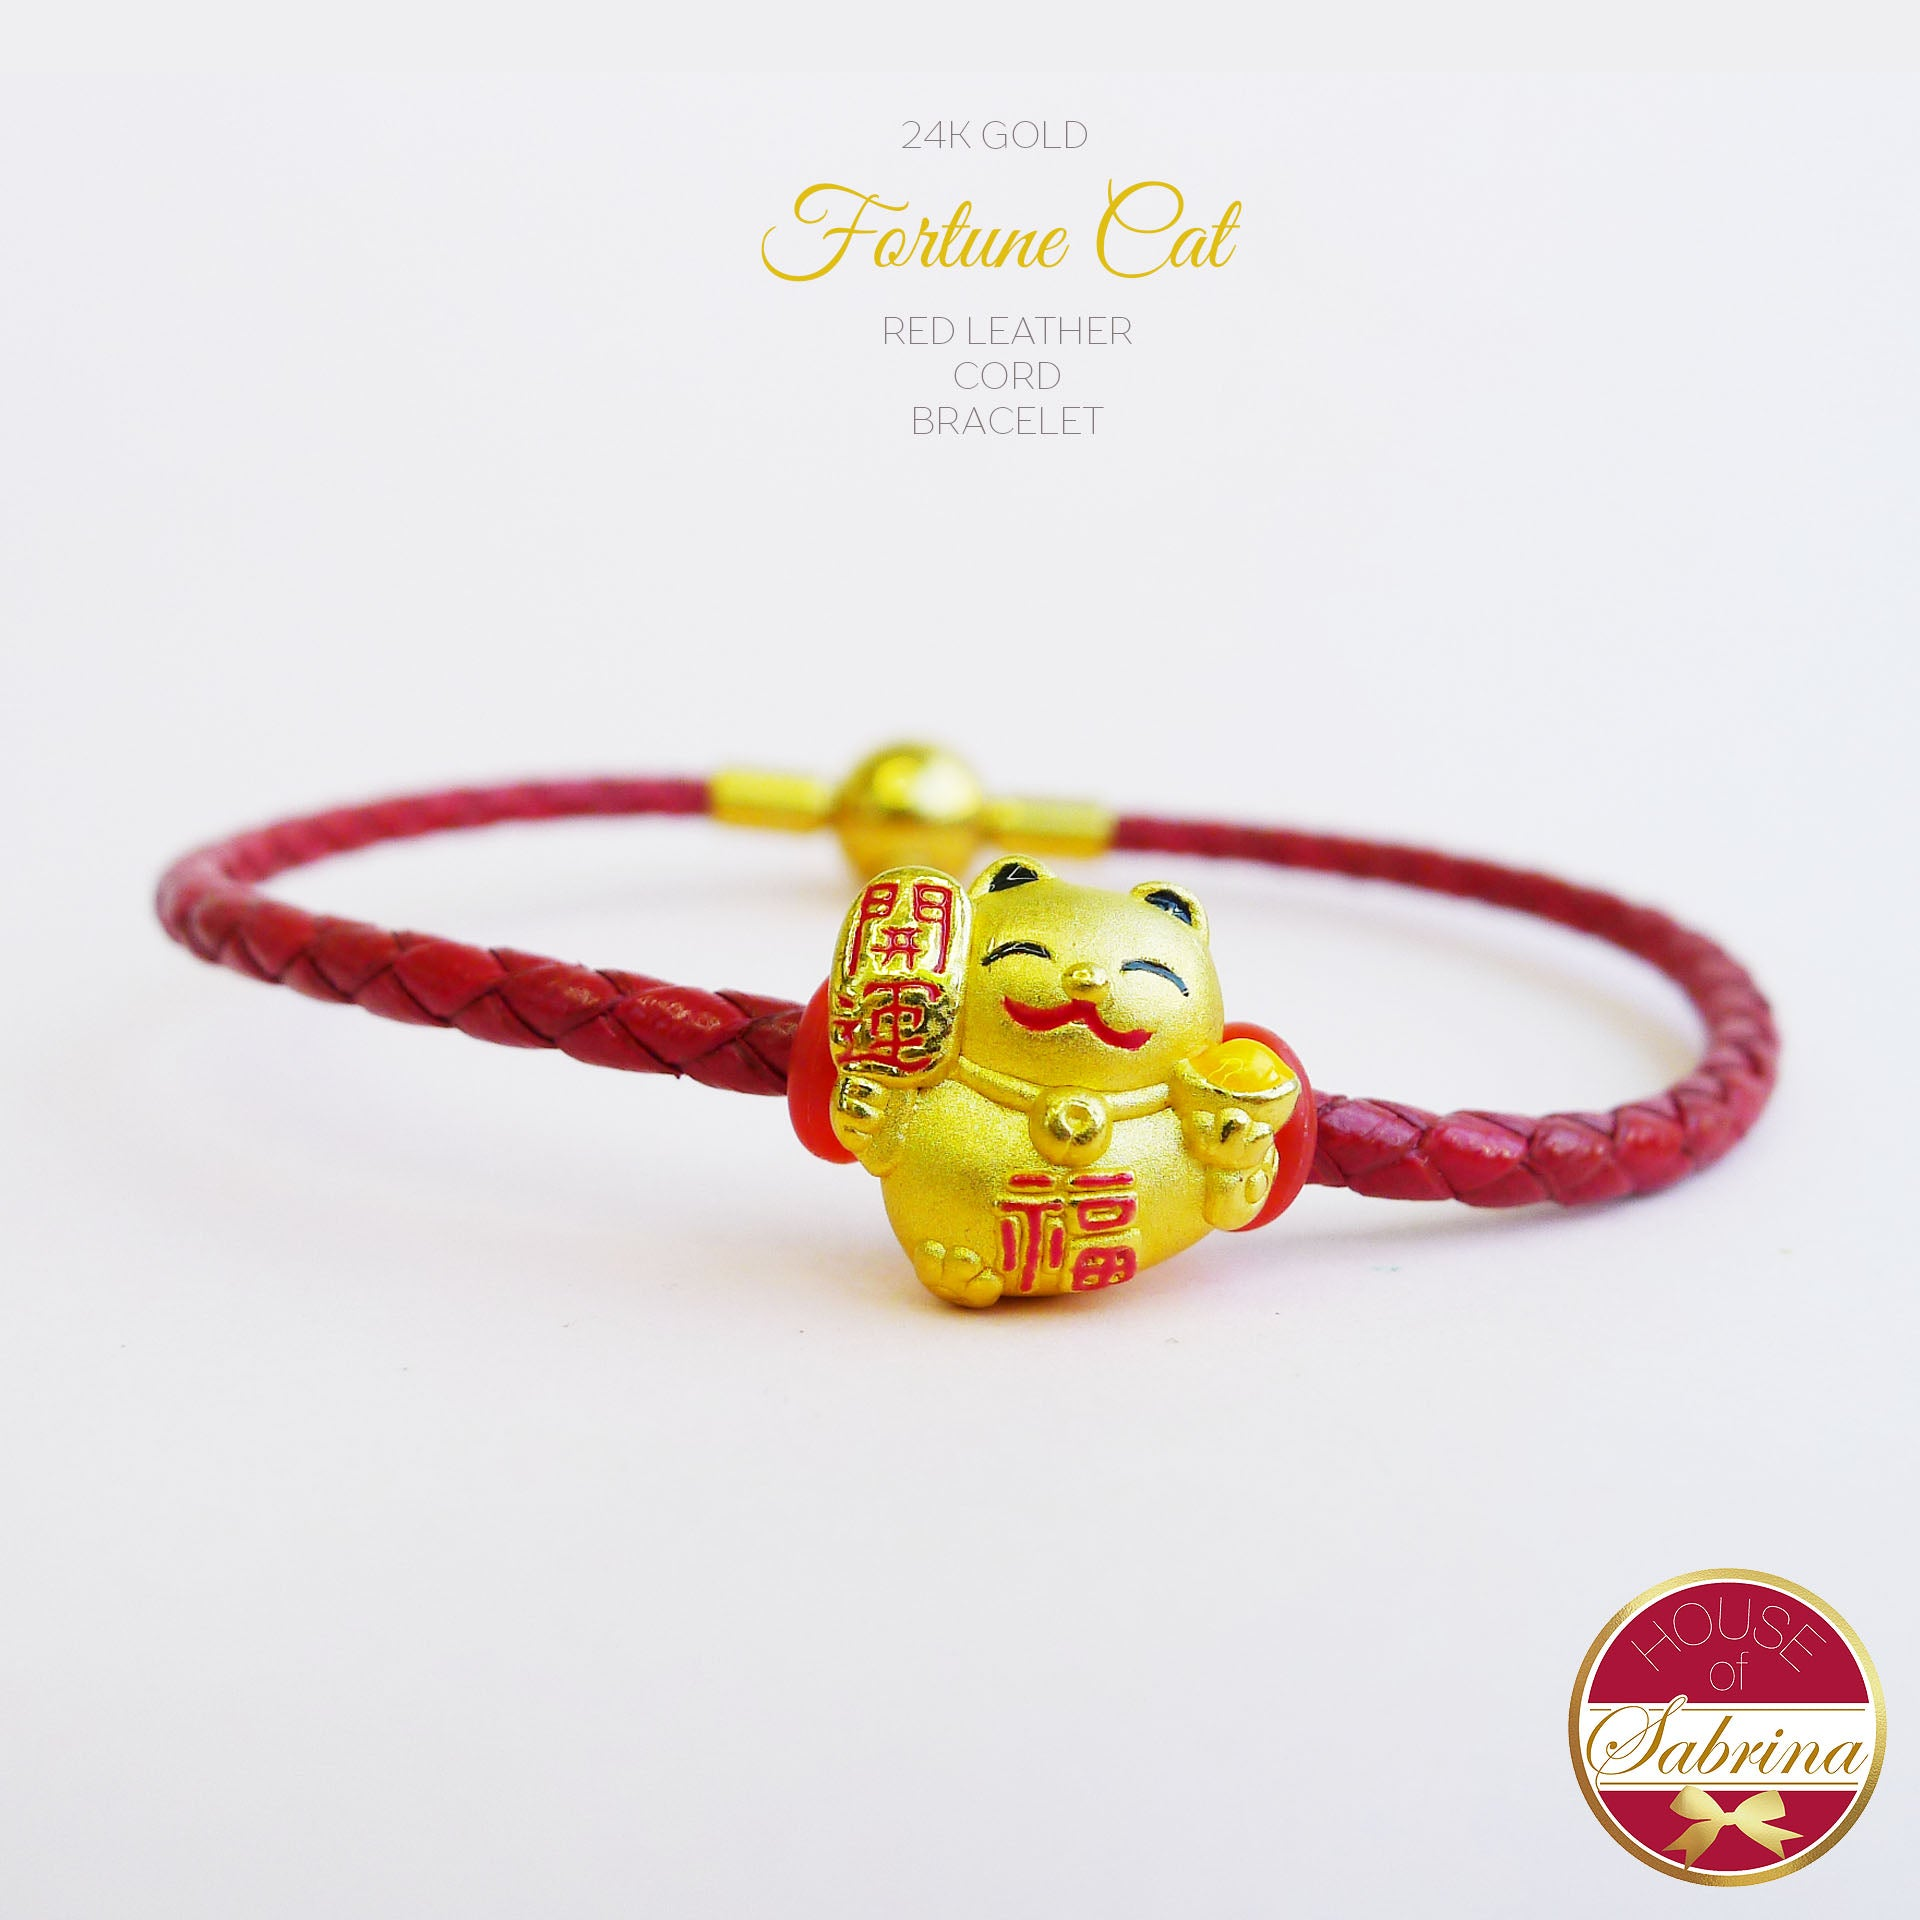 24K GOLD FORTUNE CAT ON RED LEATHER CORD BRACELET